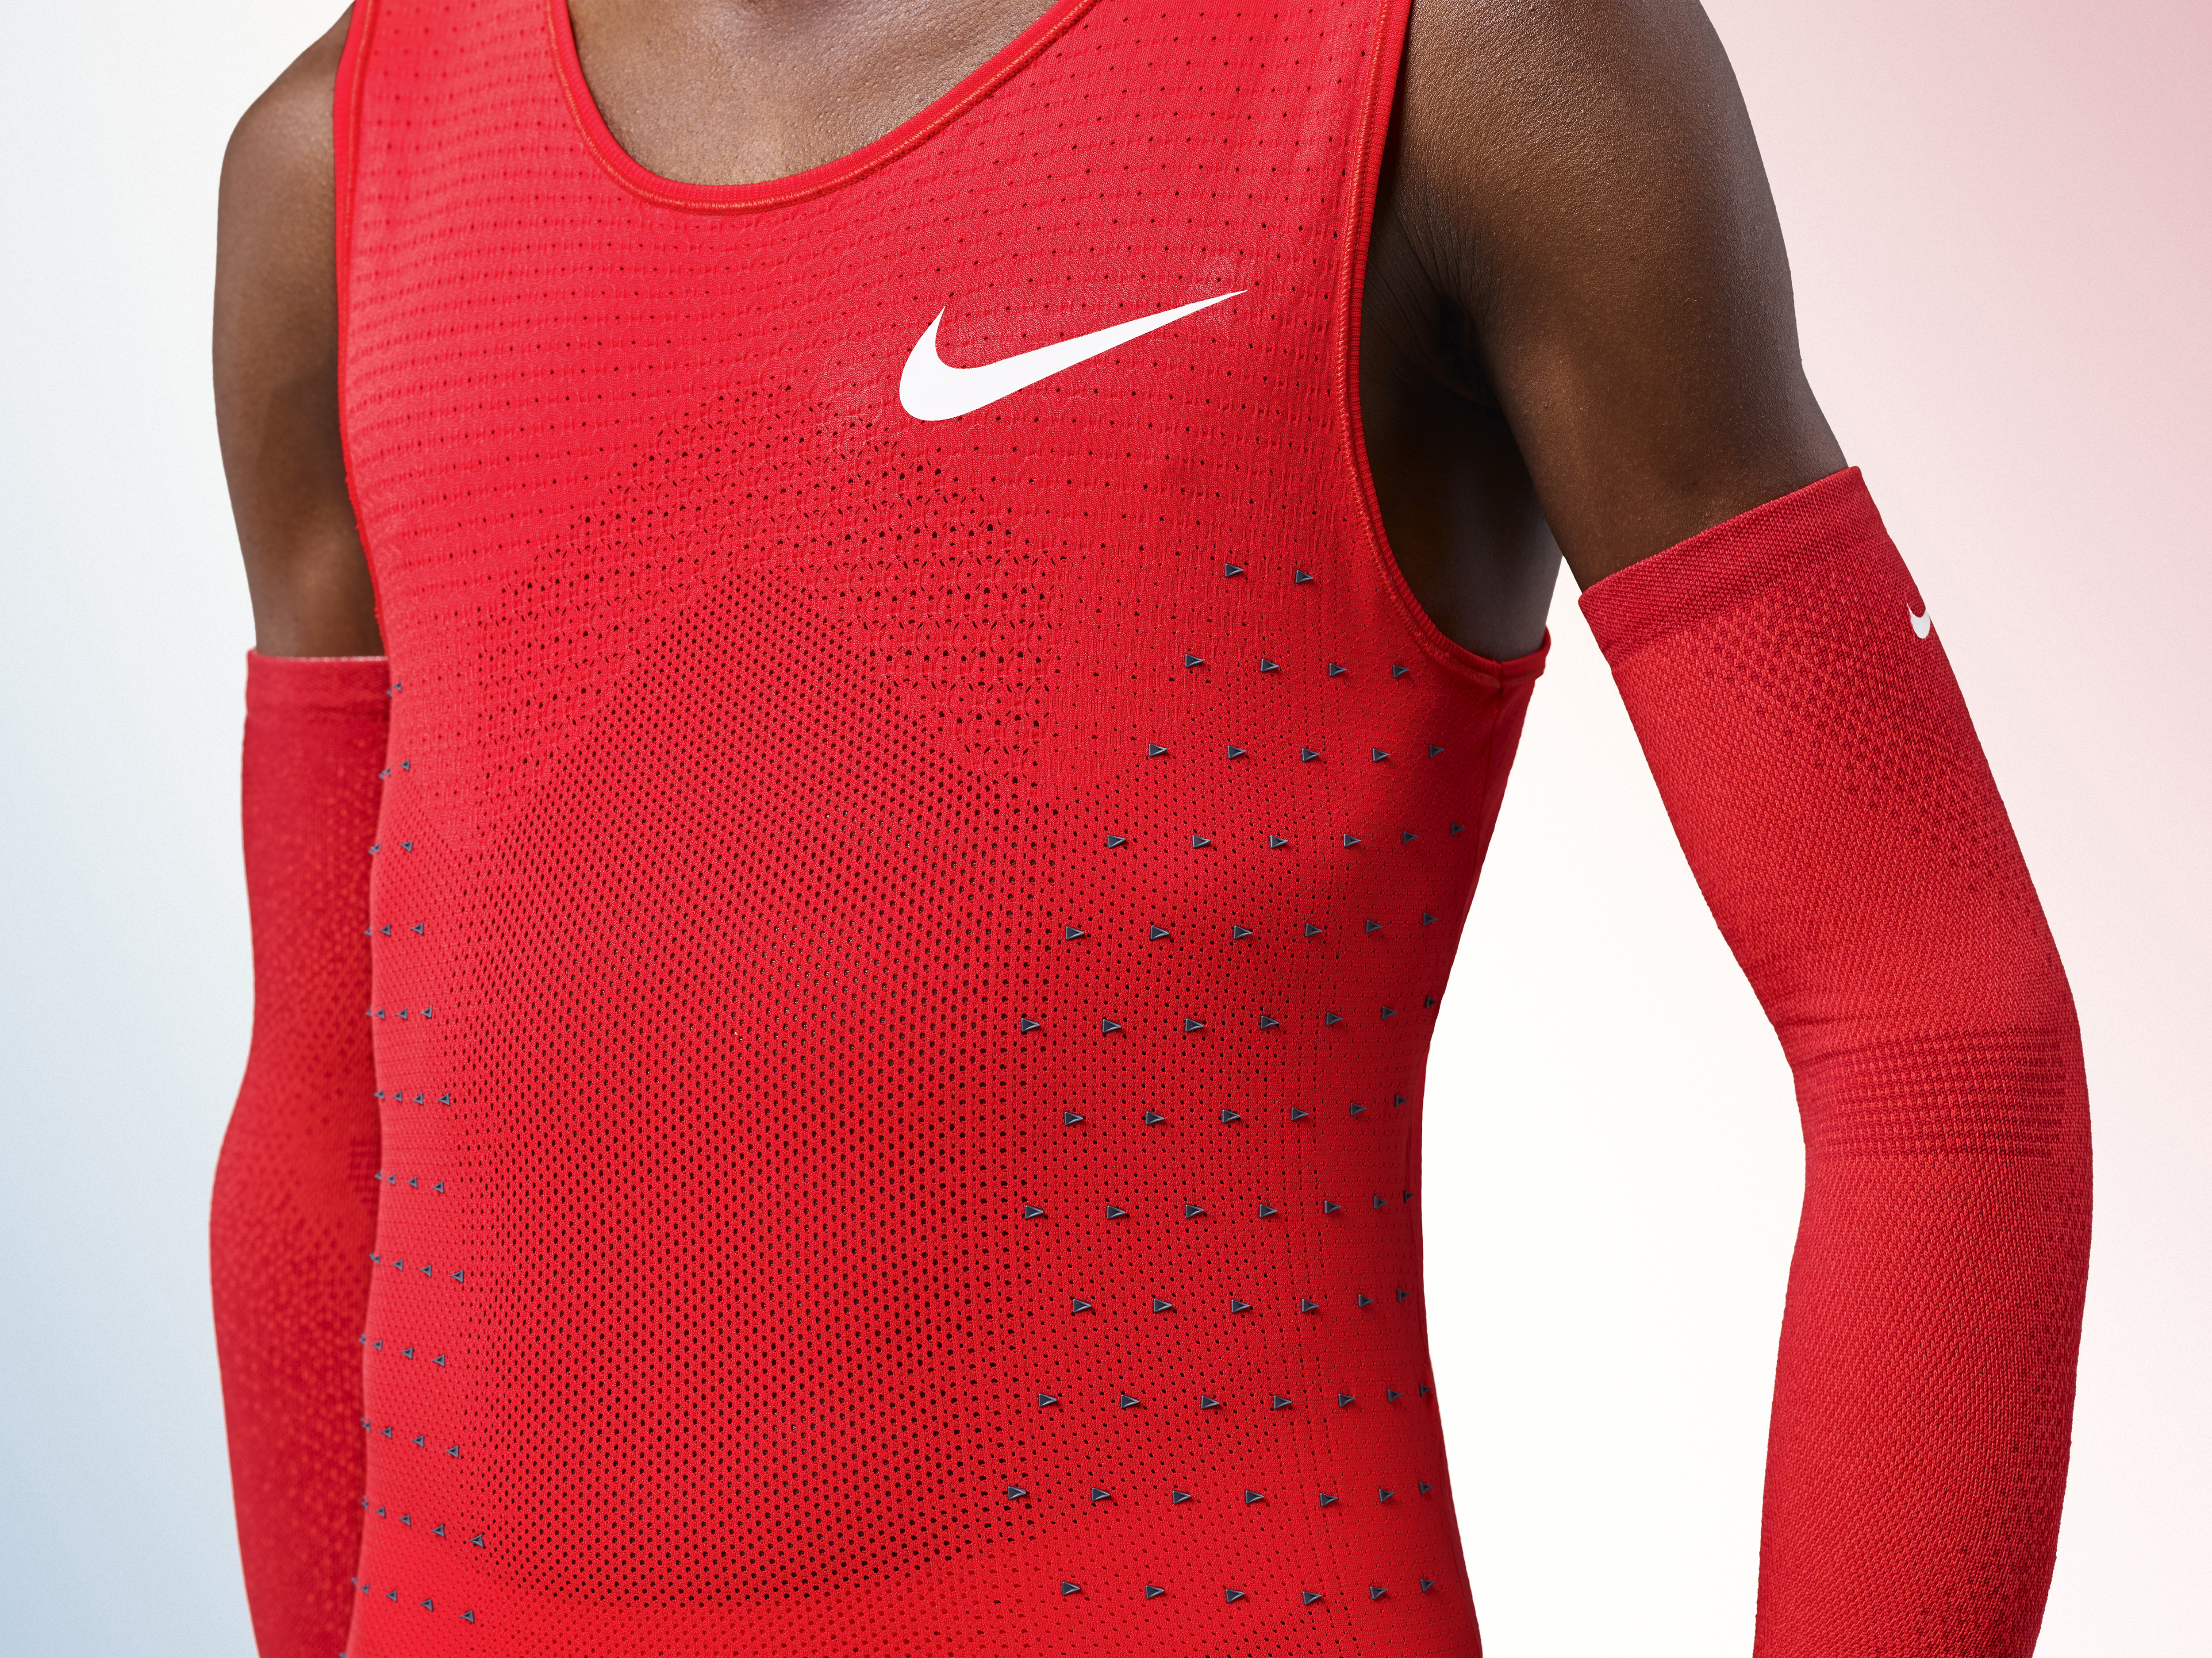 Nike running shirt red detail